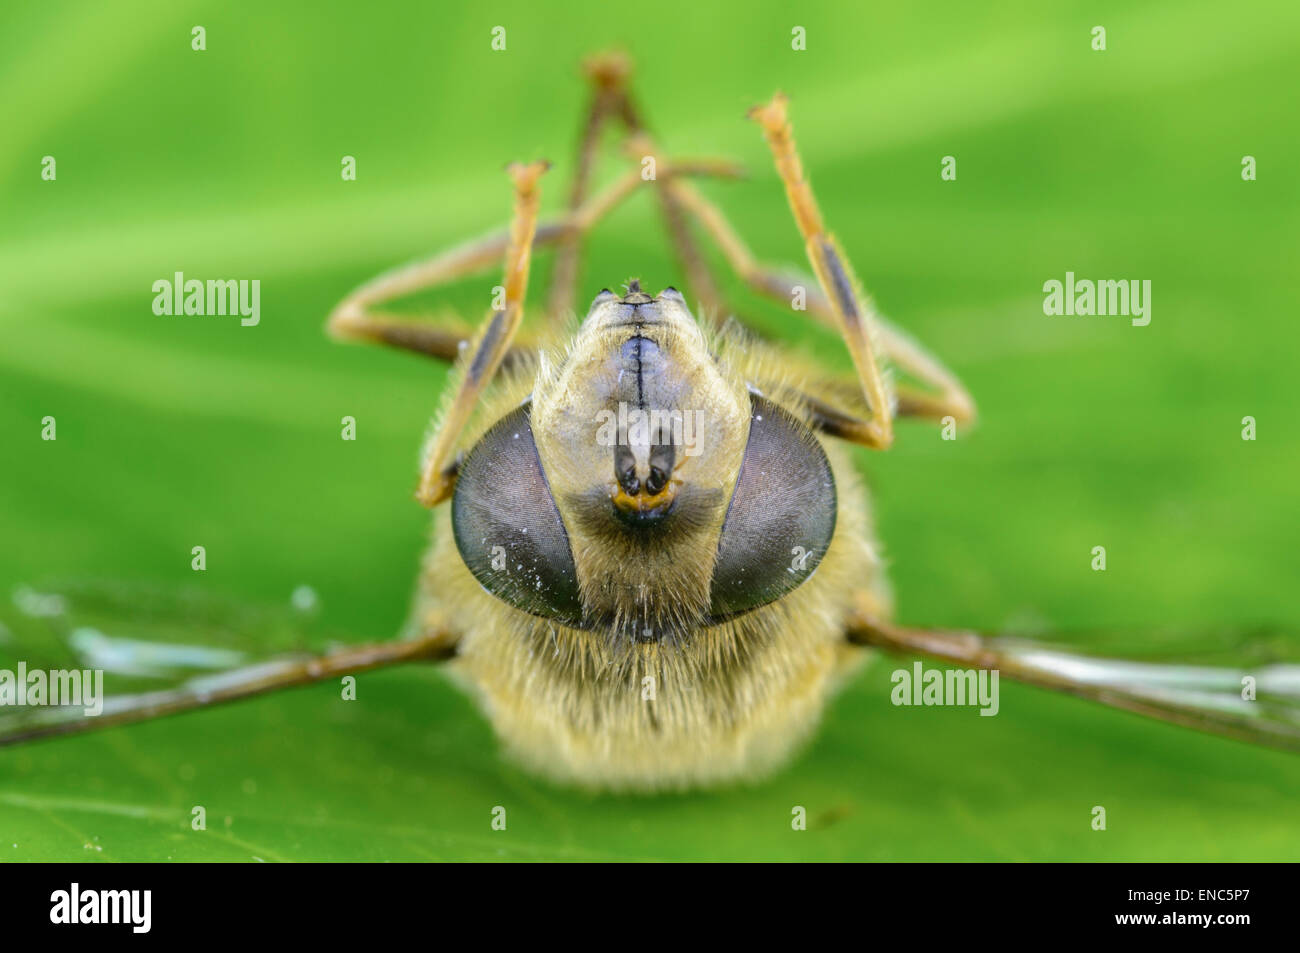 Front view of a dead Hoverfly (probably Myathropa Florea) laying on it's back in West Sussex, England, UK. - Stock Image